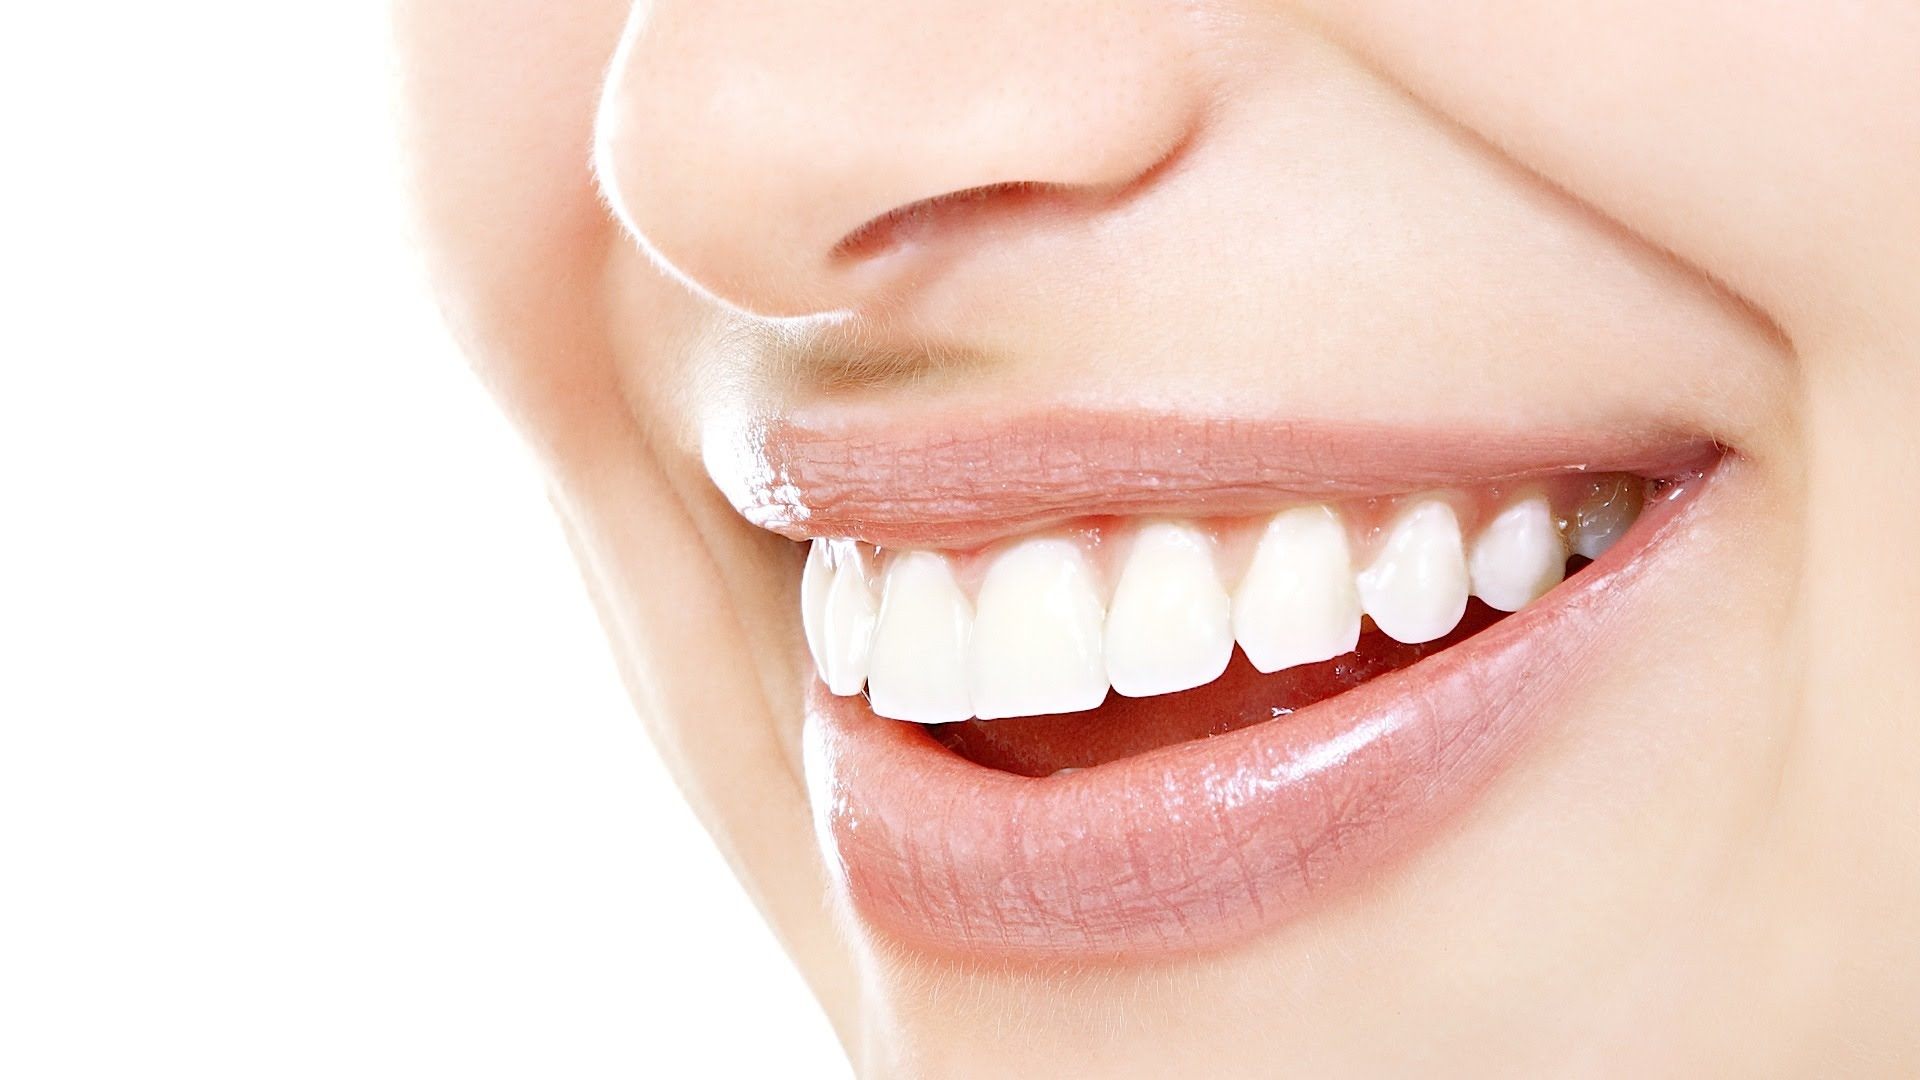 Smile with Braces, Newcastle, braces, dentist near me,Dentist, dentist Newcastle